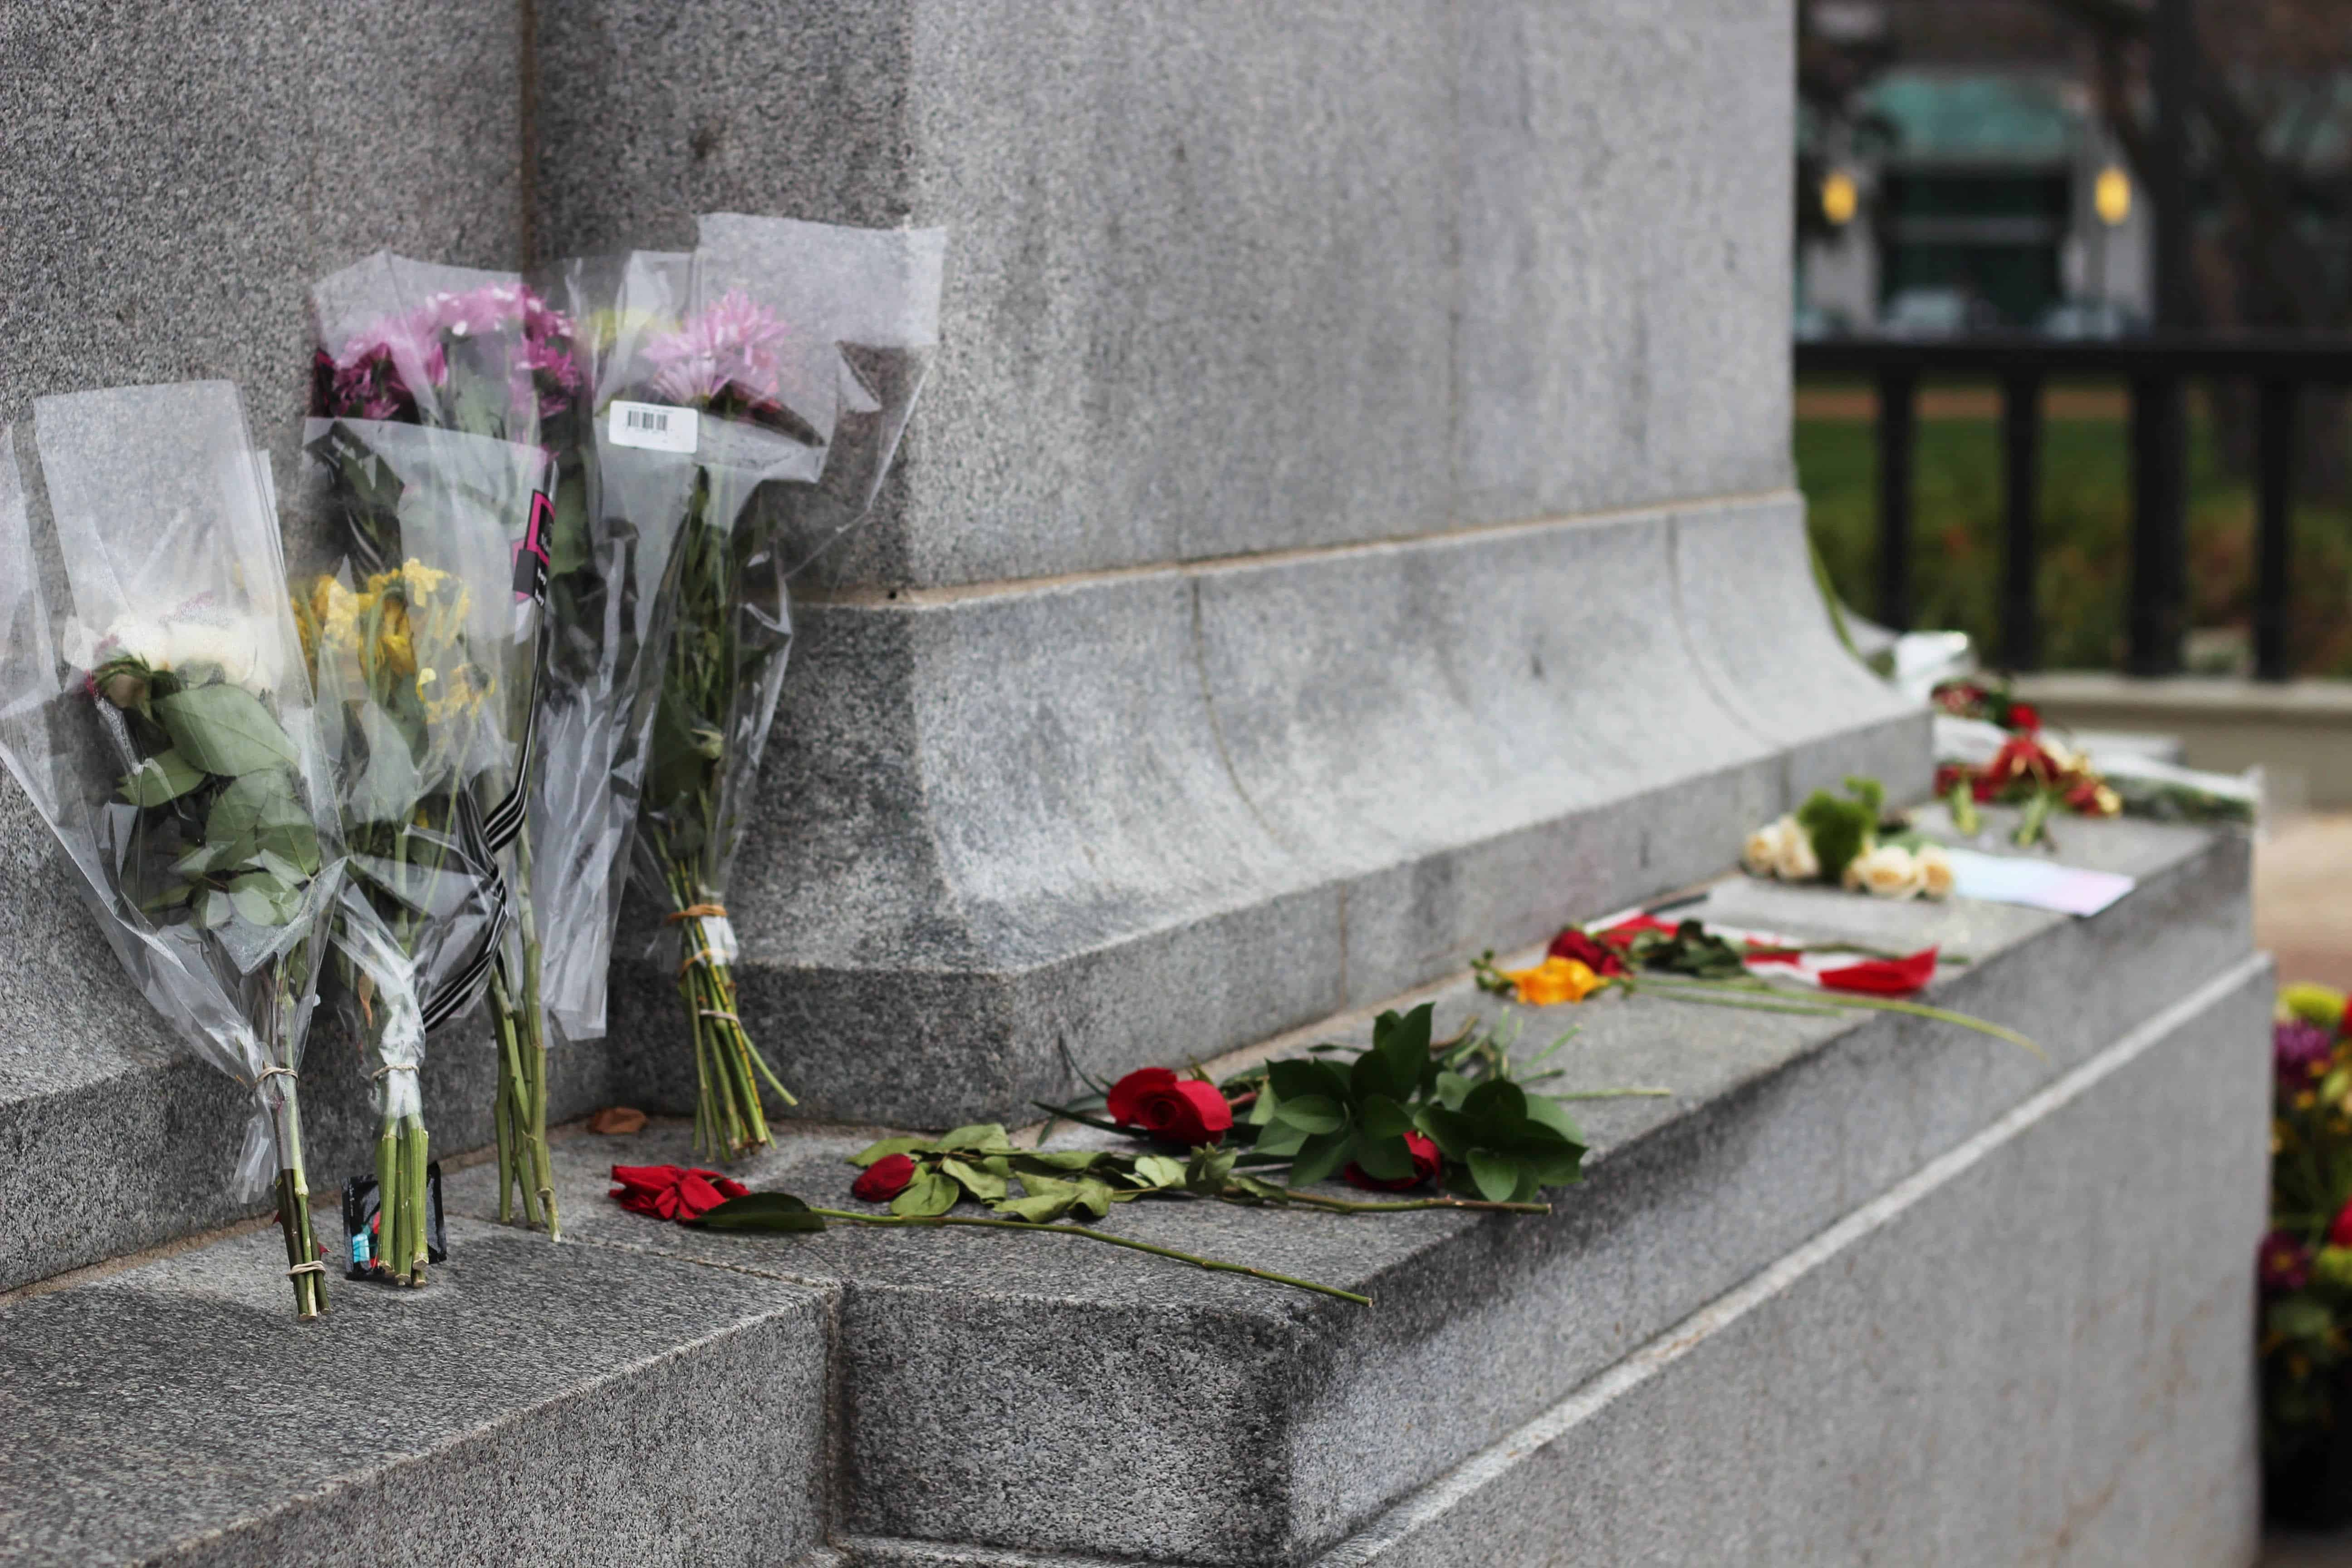 terrorism act in canada More than 100 canadian law professors have warned the prime minister,  stephen harper, that a sweeping new anti-terror law introduced by.